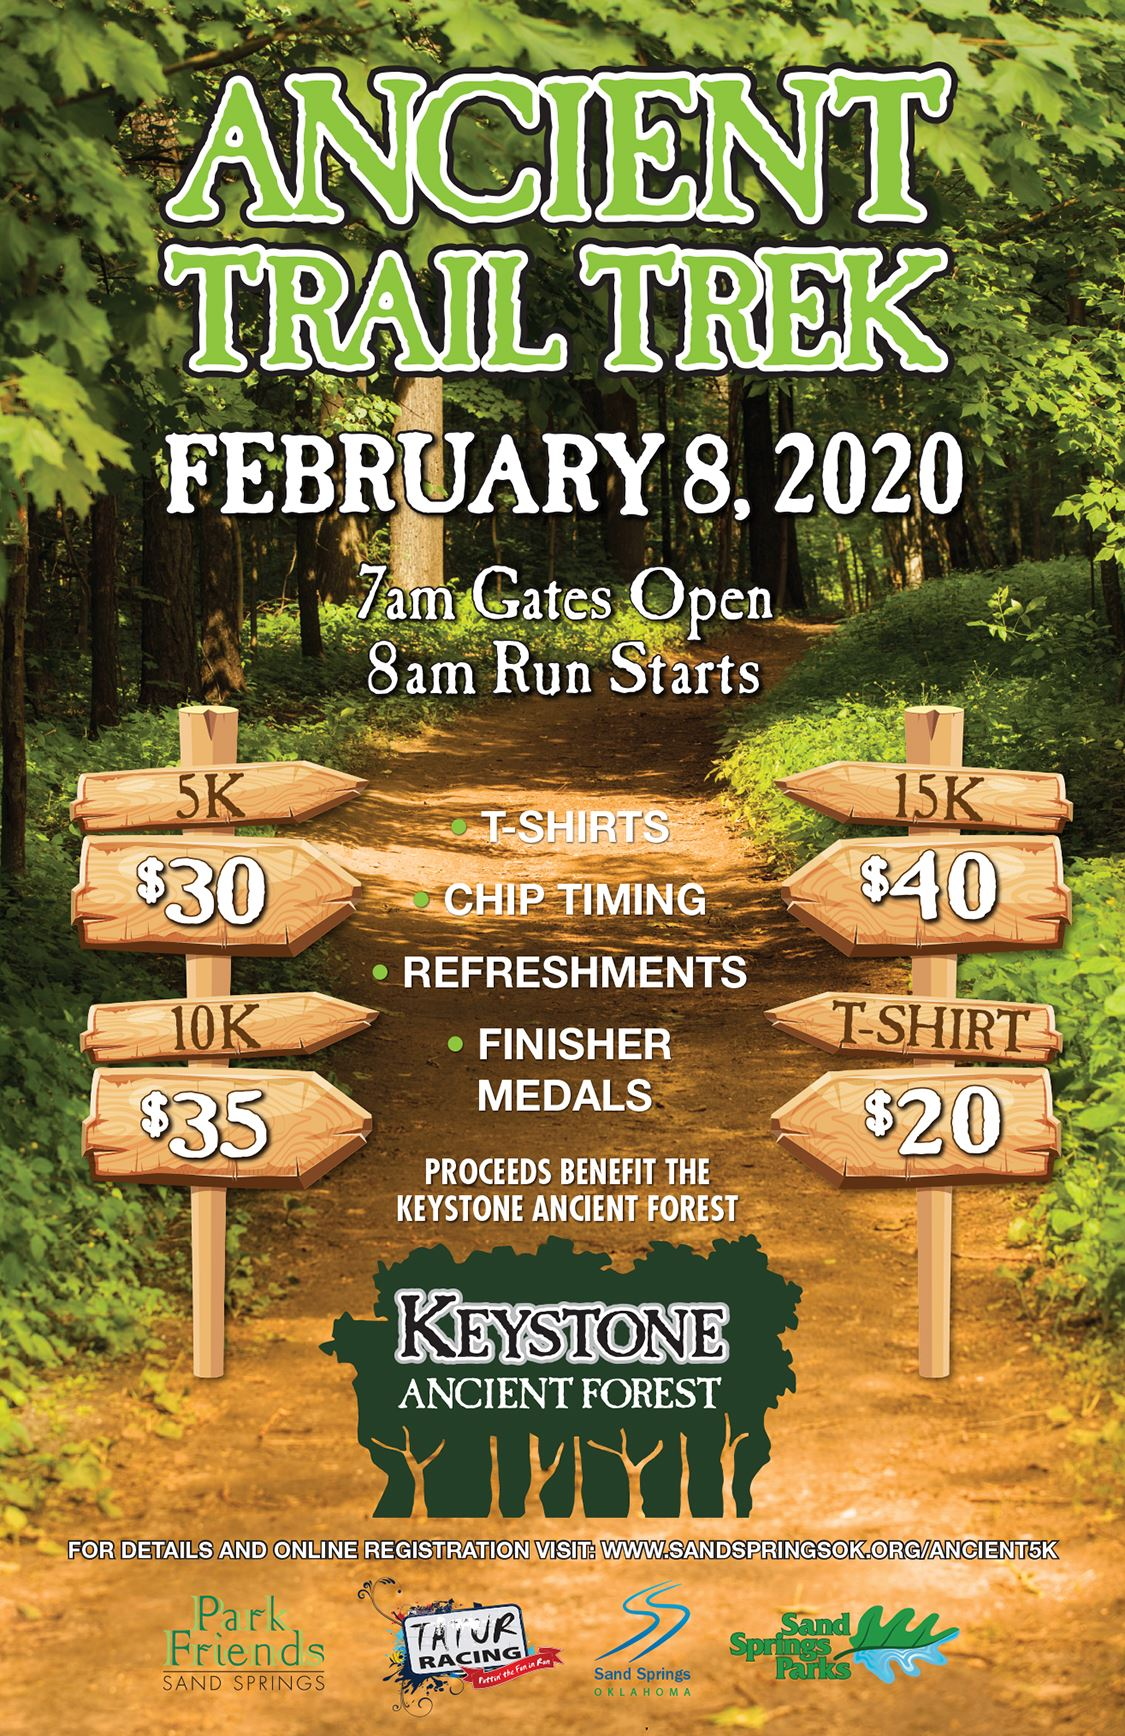 SSP_ANCIENT_TRAIL_RUN_IMAGE (2020)_RGB